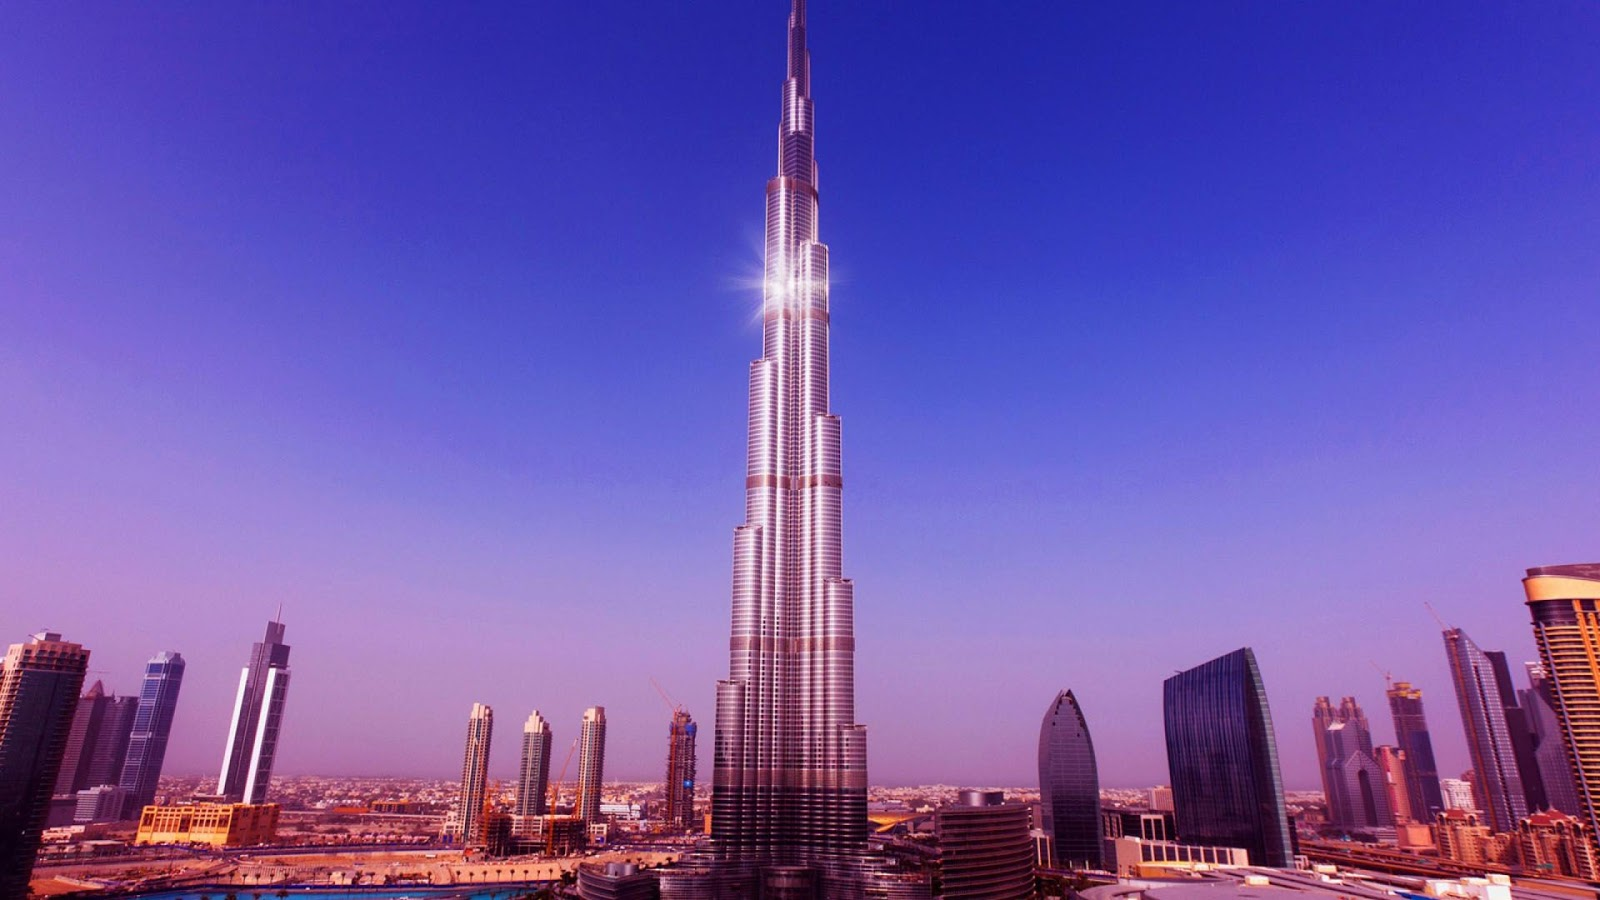 Burj khalifa car and electronic wallpaper for Videos dubai